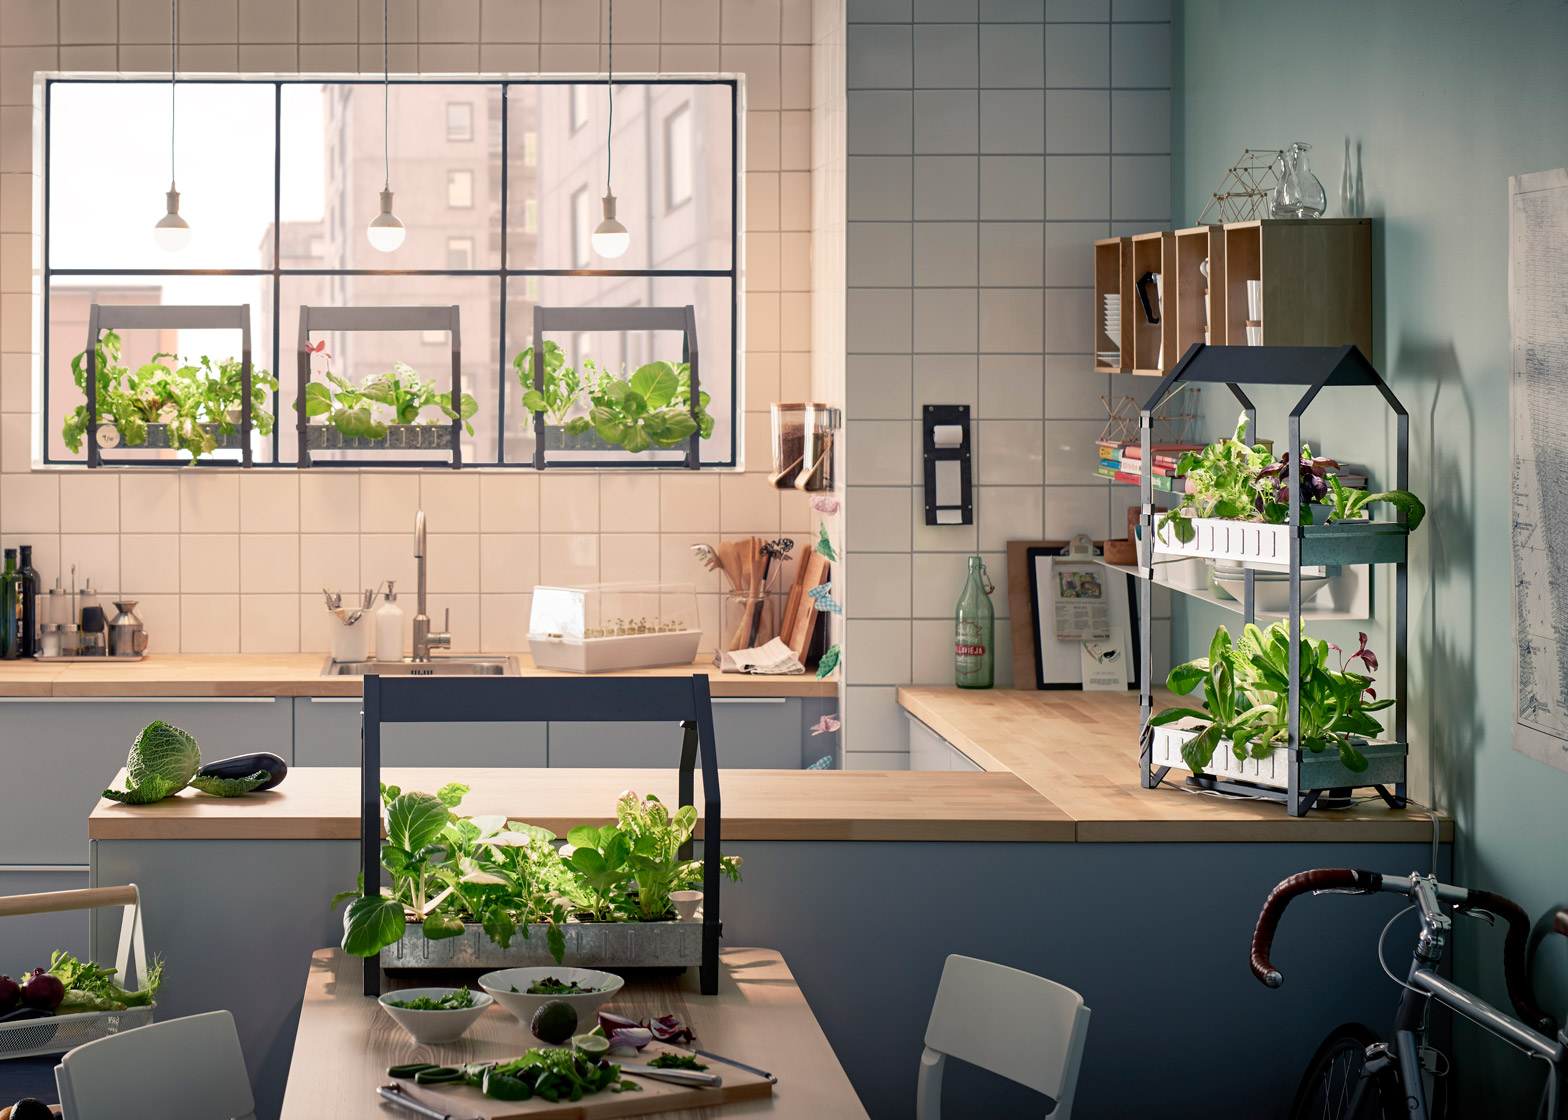 Splendid Ikea Moves Into Indoor Gardening With Hydroponic Kit With Licious  Of  Ikea Introduce A Hydroponic Indoor Gardening Kit With Nice Potted Garden Also Edgbaston Botanical Gardens In Addition Kids Garden Slides And Club Al Moggar Garden Beach As Well As Garden Furniture Amazon Additionally Garden In A Bottle From Dezeencom With   Nice Ikea Moves Into Indoor Gardening With Hydroponic Kit With Splendid Club Al Moggar Garden Beach As Well As Garden Furniture Amazon Additionally Garden In A Bottle And Licious  Of  Ikea Introduce A Hydroponic Indoor Gardening Kit Via Dezeencom